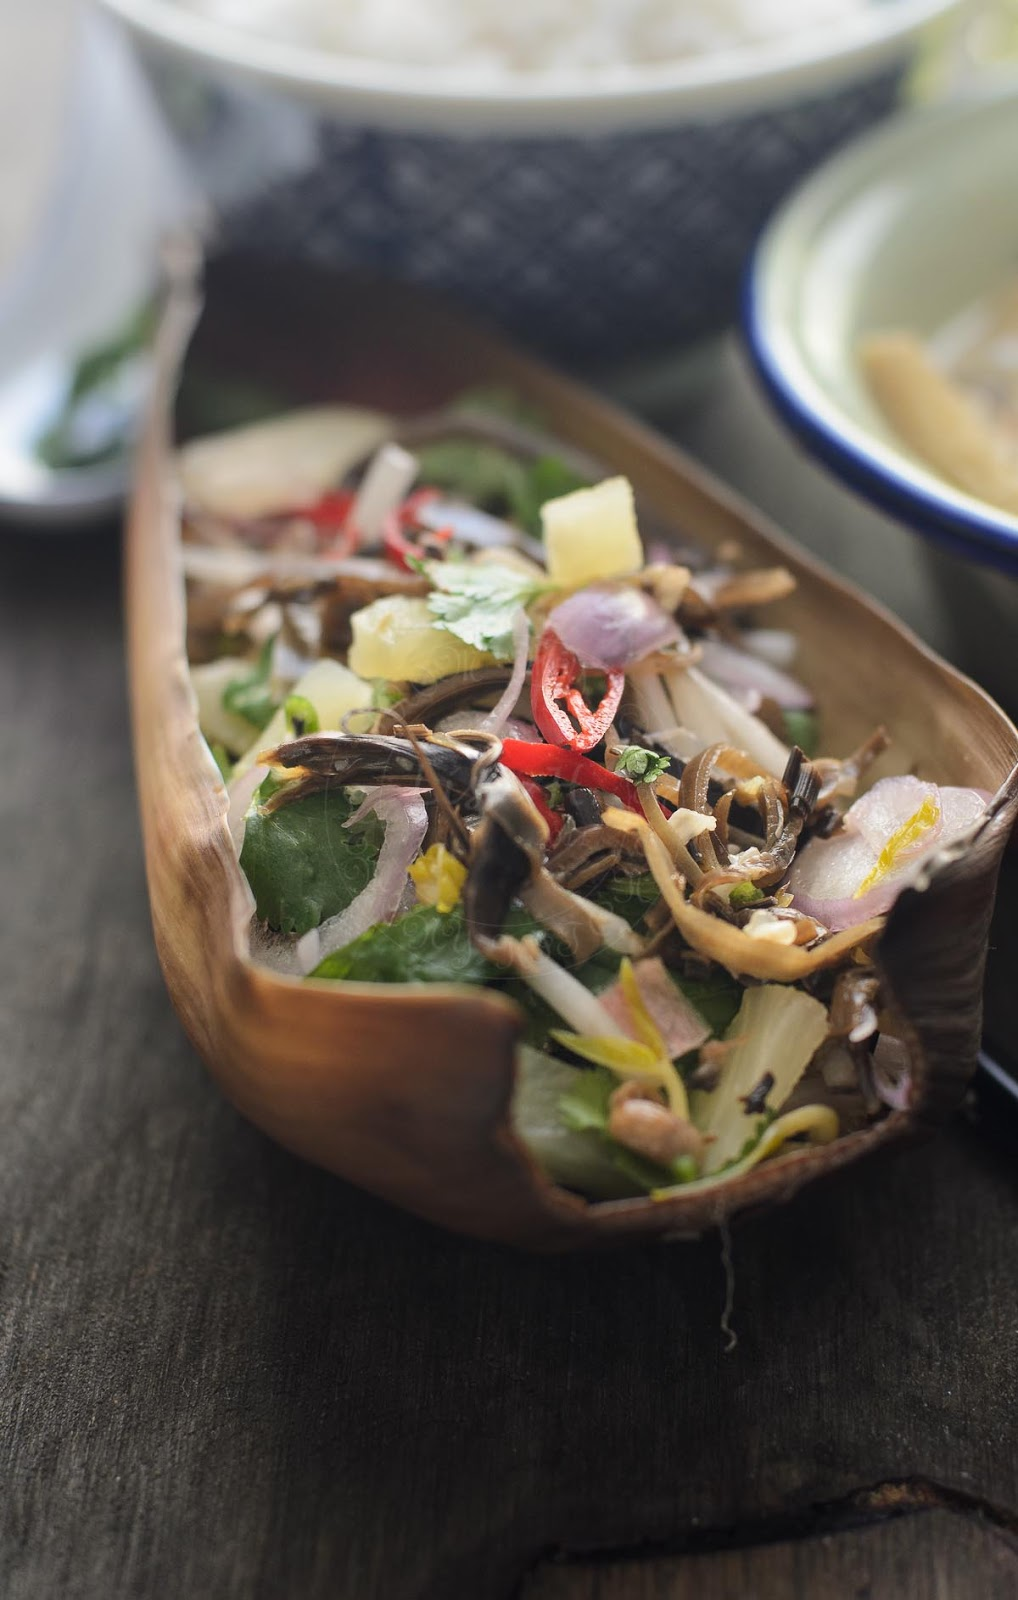 Banana Blossom and Pineapple salad